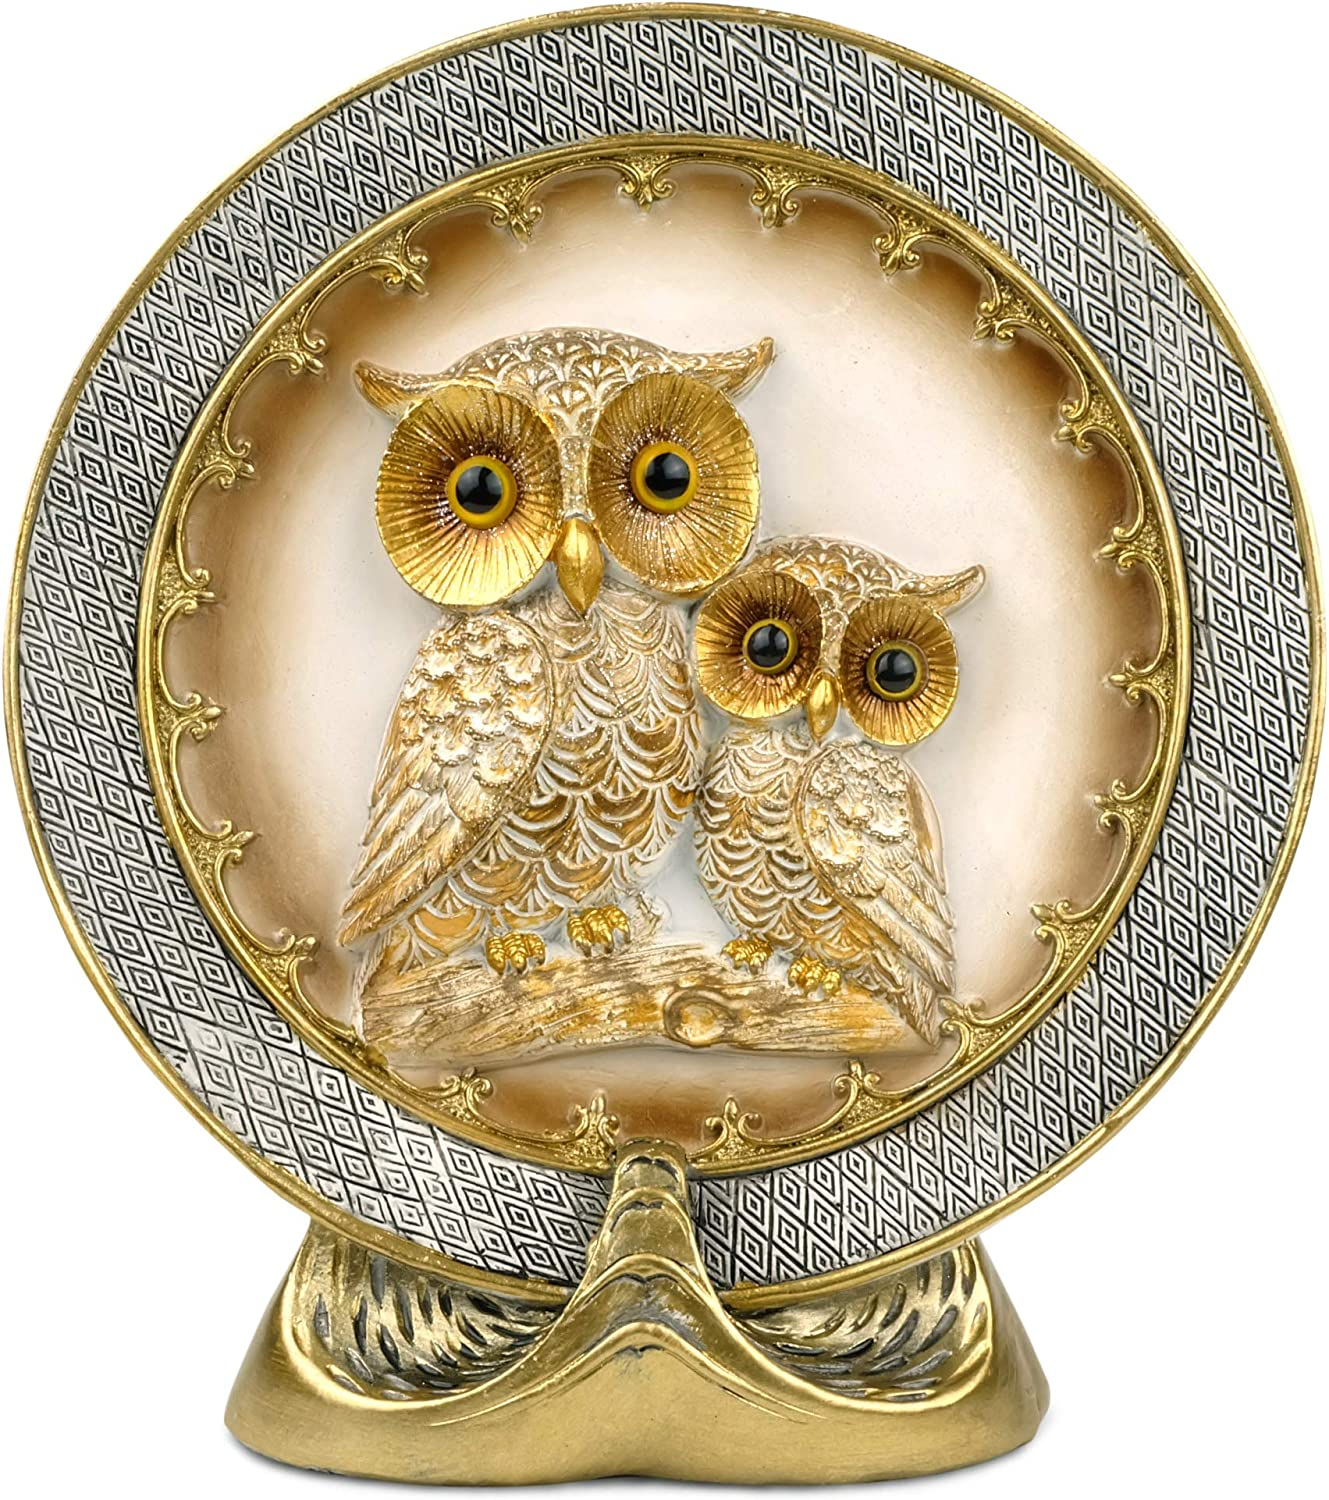 Garwor Home Décor Owl Embossed Decorative Plate with Stand, Elegant Classic Home Décor Plate, Owl Bird Rustic Decorate Plate Kitchen Shelf Displaying